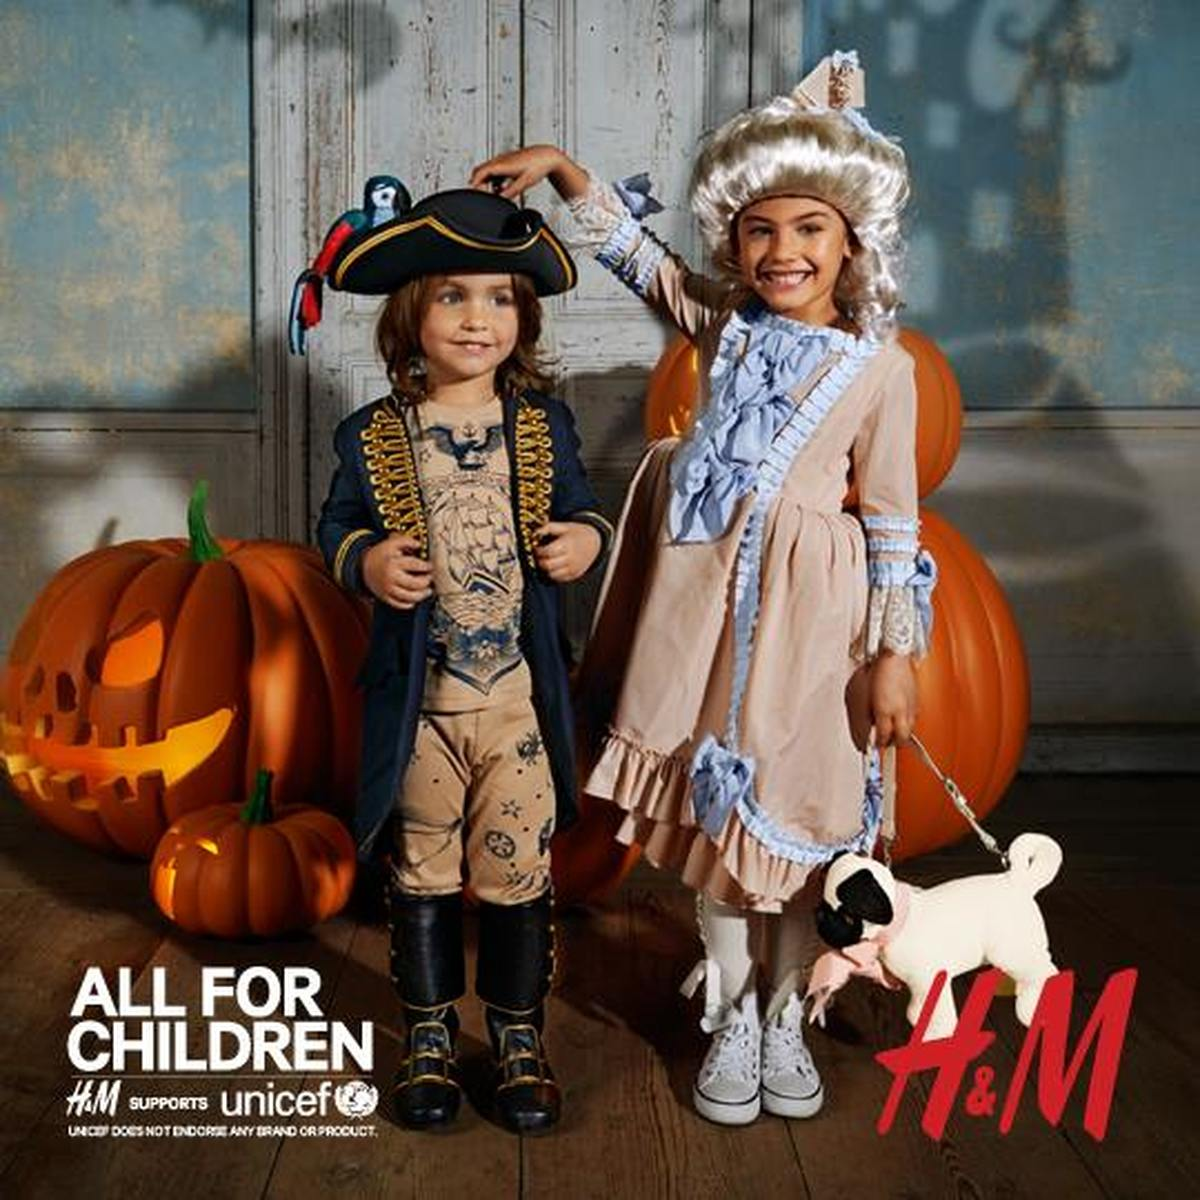 LUNDLUND : H&M all for children